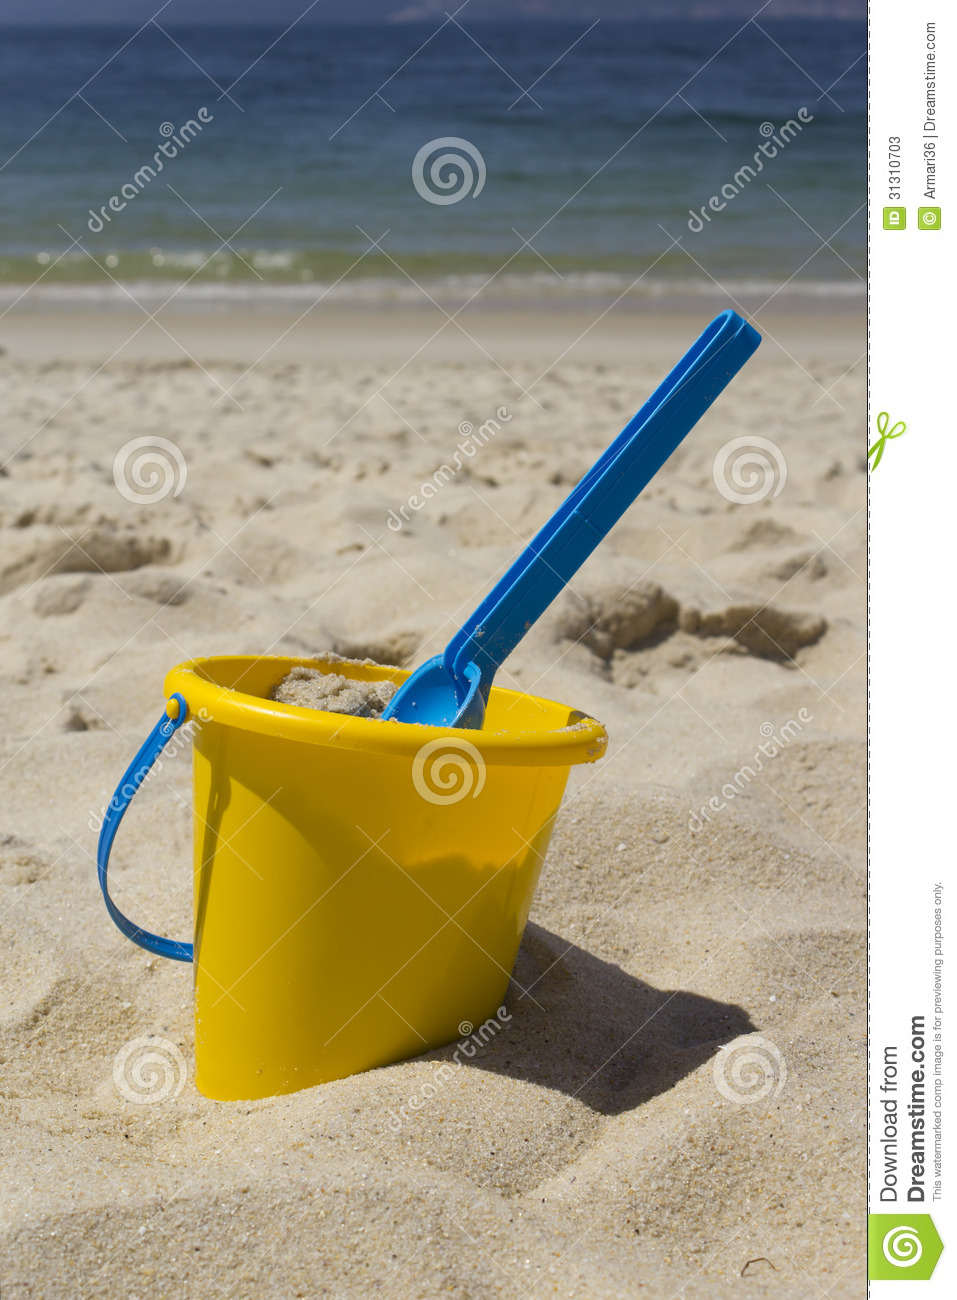 Picture of a bucket with his shovel in the sand at the beach.